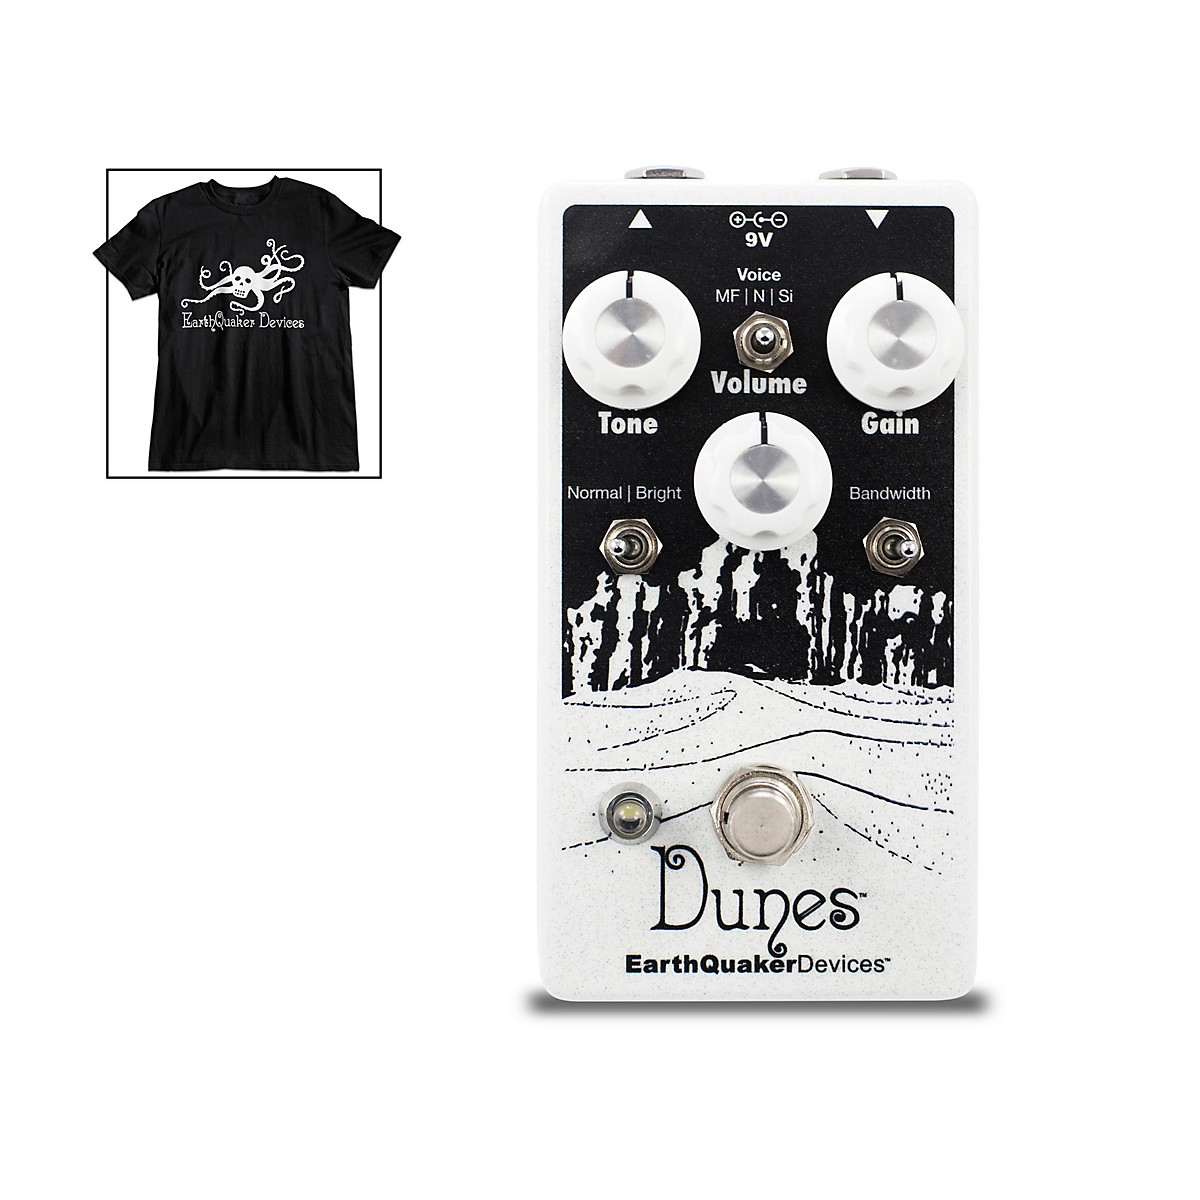 Earthquaker Devices Dunes Overdrive Guitar Pedal V2 with Octoskull T-Shirt Large Black